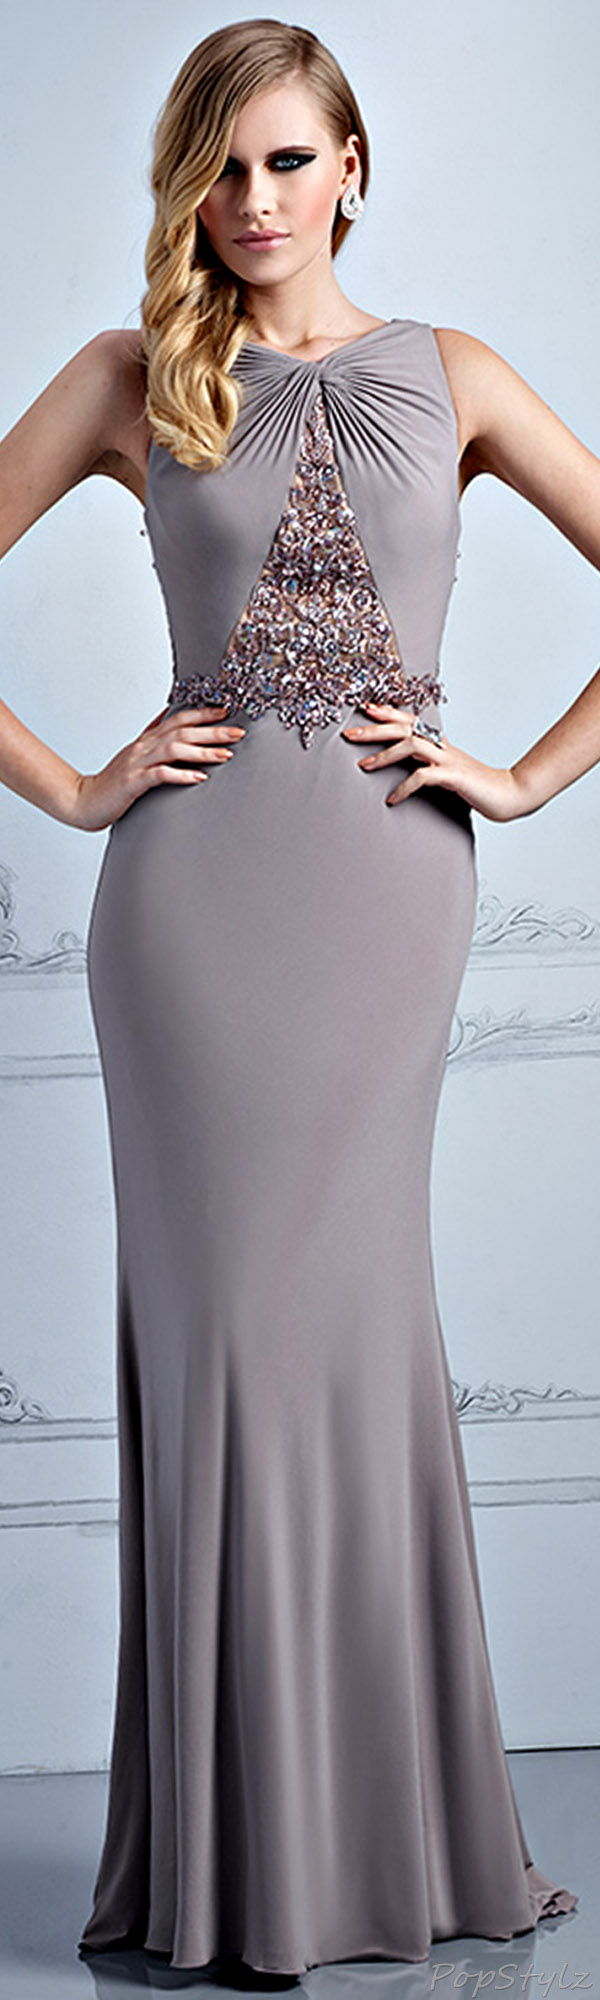 Terani Couture E2154 Dress